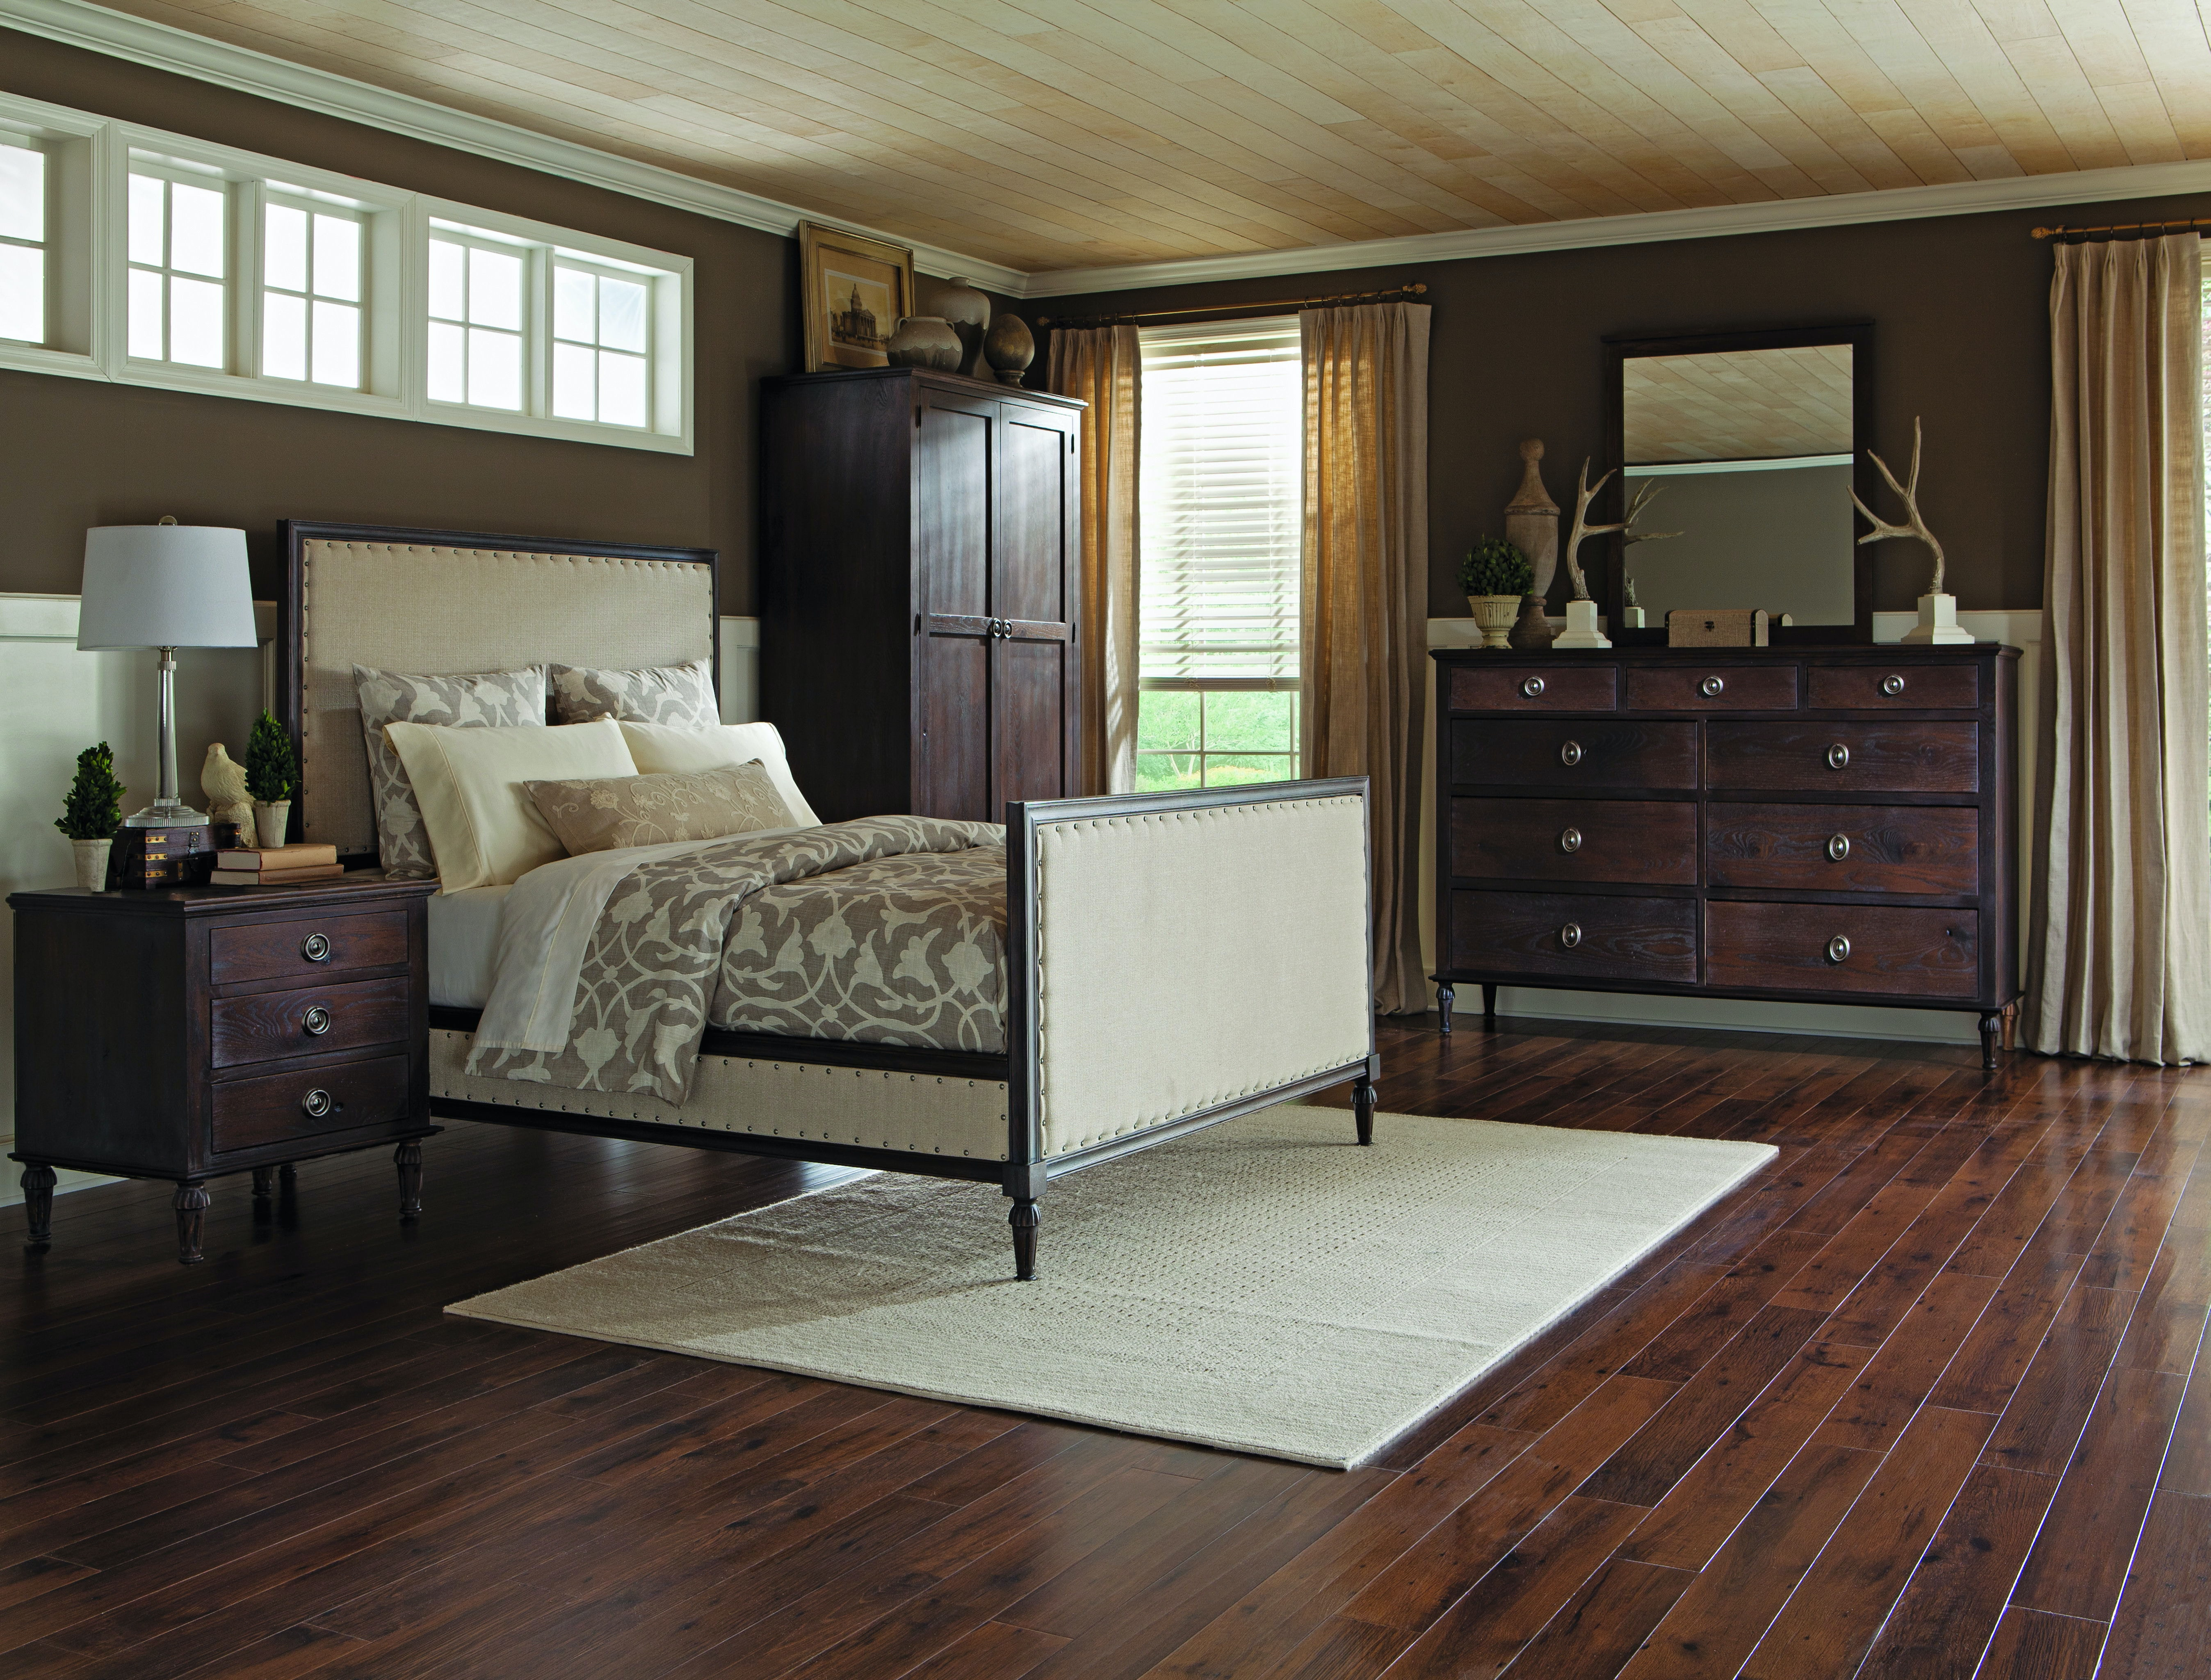 Palettes By Winesburg Upholstered Bed With Both Side Drawers Southampton  Upholstered Bed With Both Side Drawers